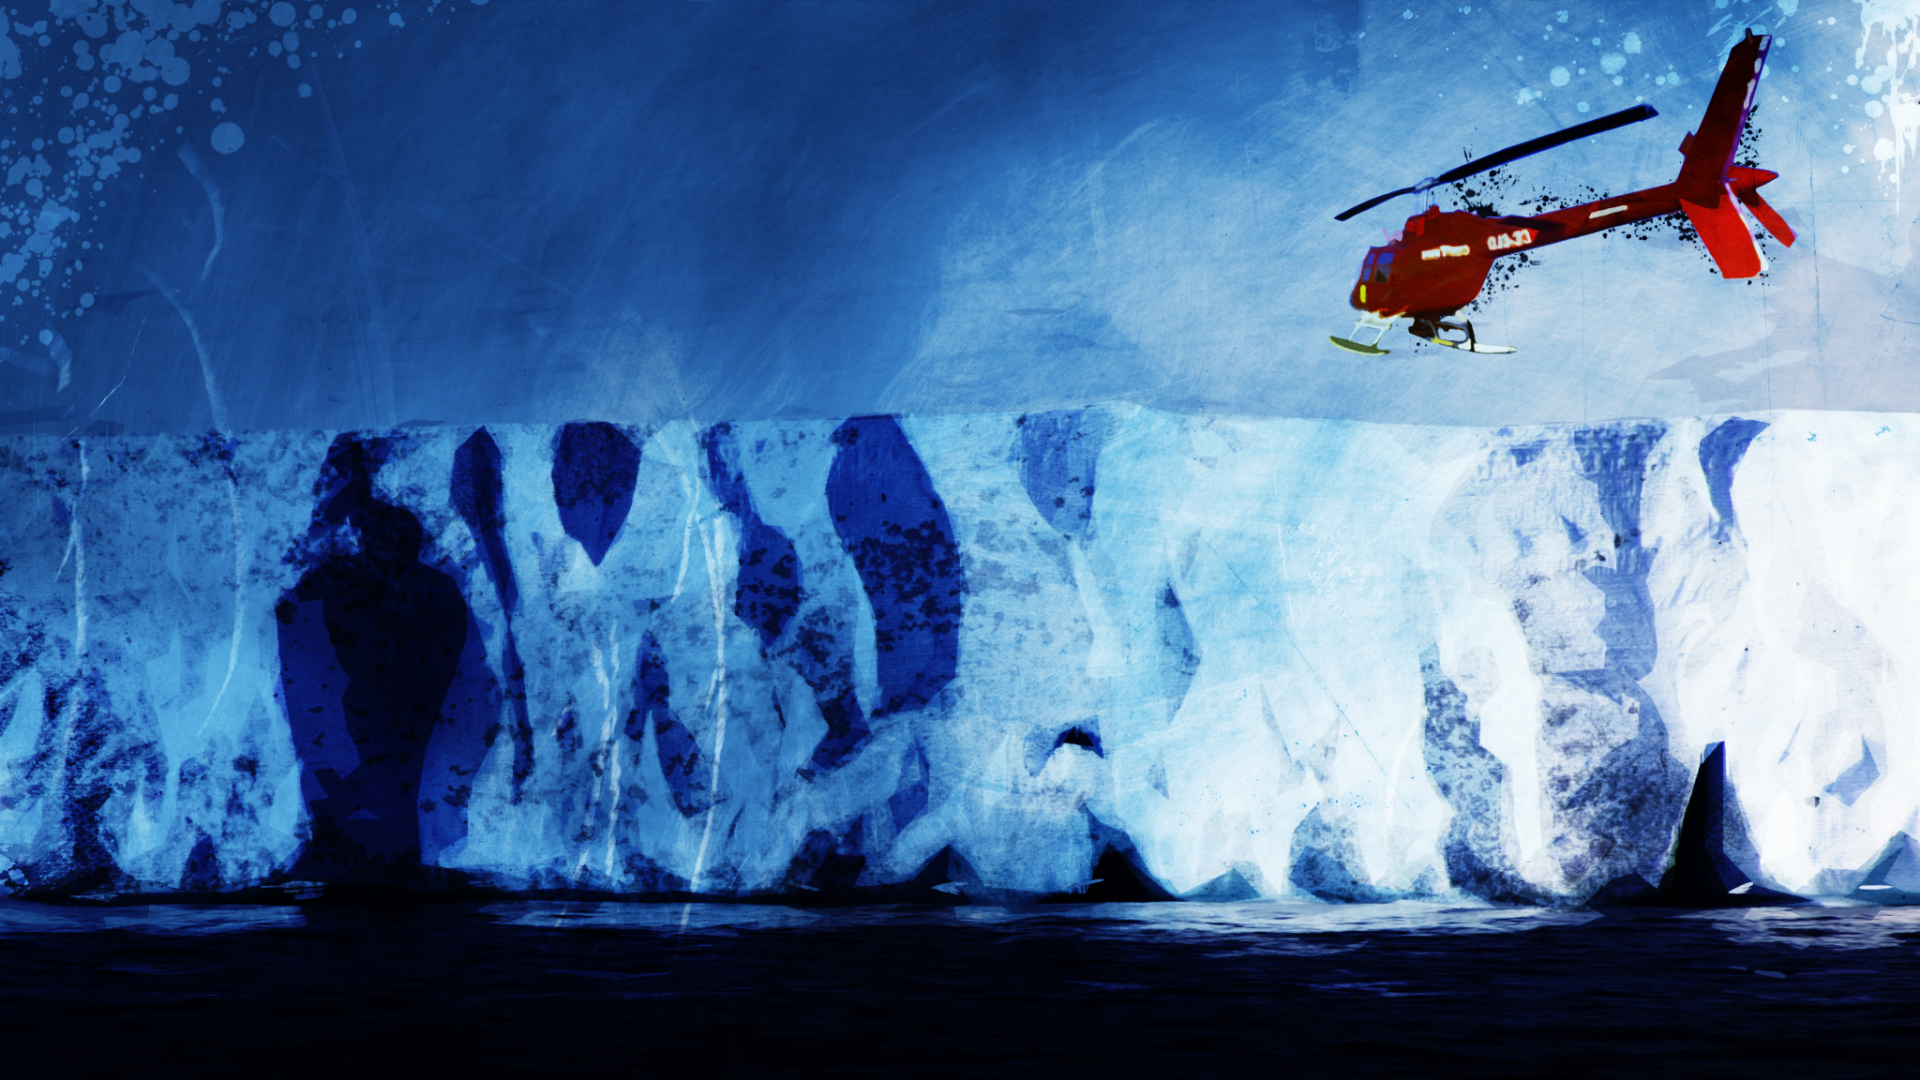 NAT_GEO_007_ROSS_ICESHELF_v03_AK_HD copy.jpg